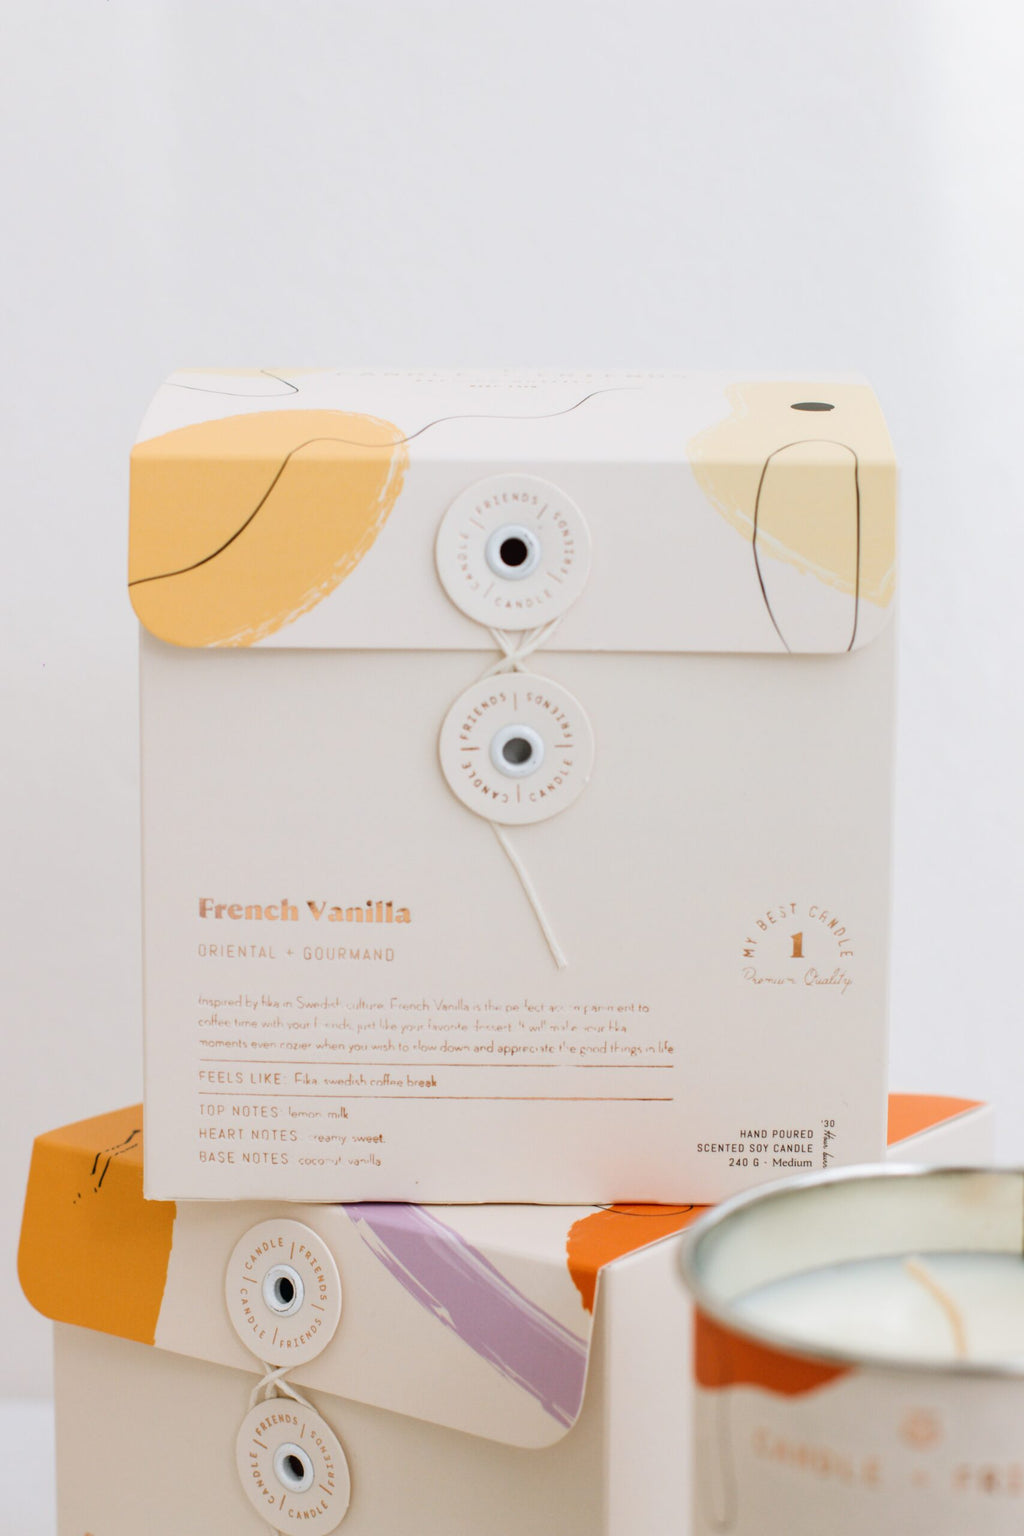 French Vanilla Cam Mum - Medium